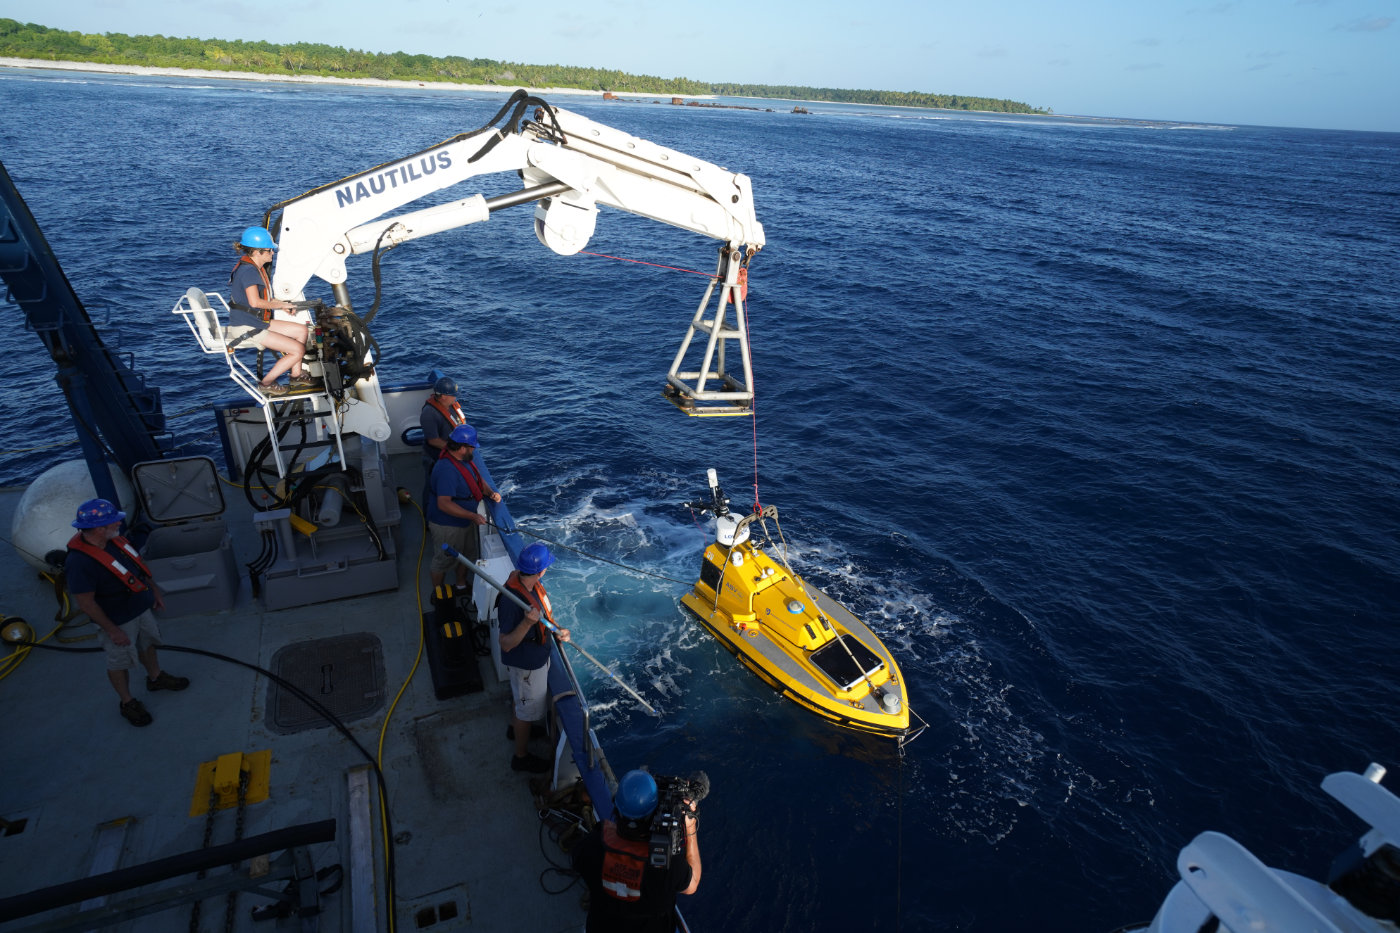 A remotely operated vehicle is lowered from the side of the E/V Nautilus